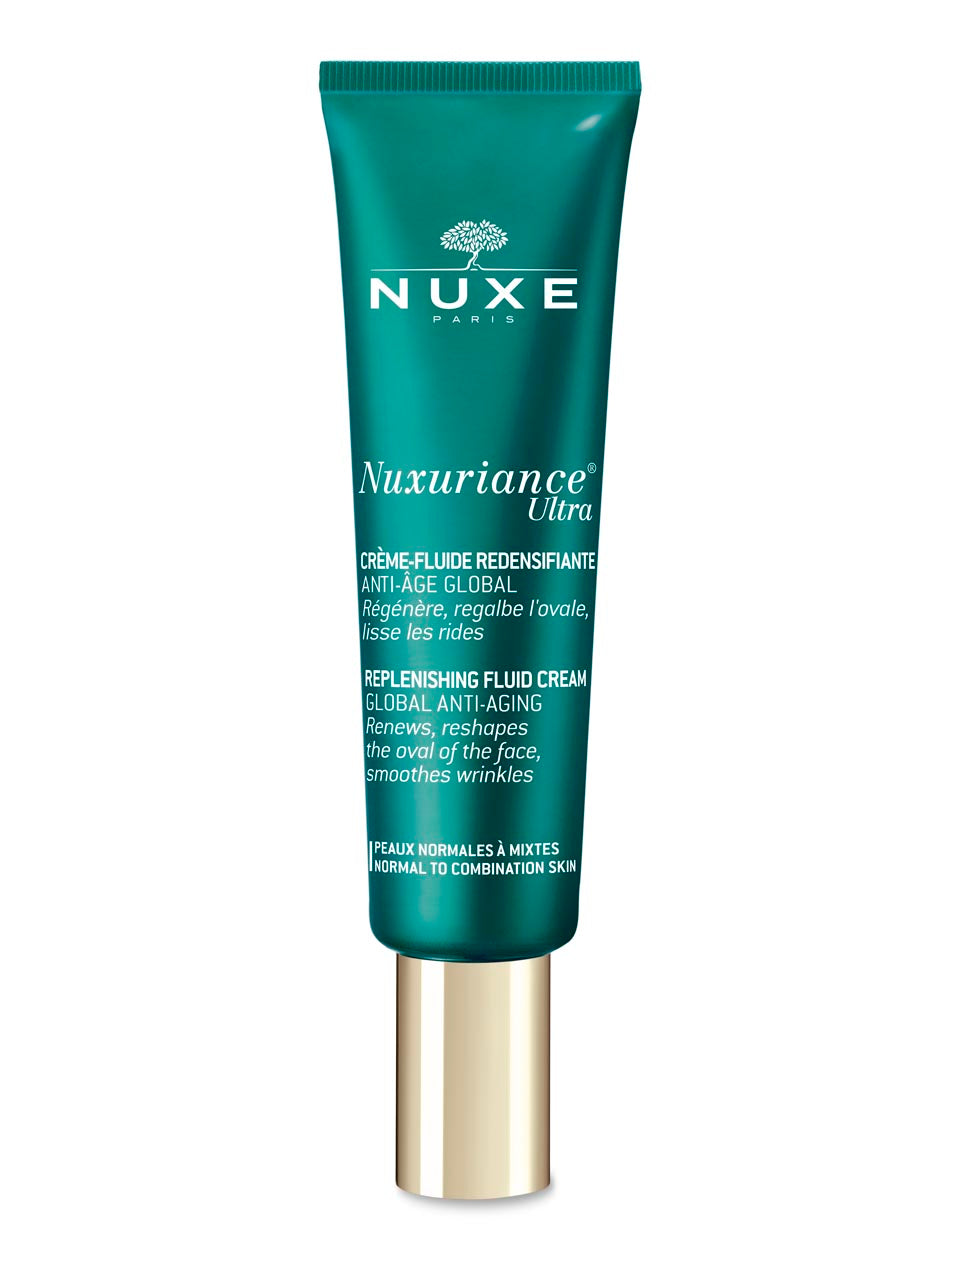 Nuxe Anti-Ageing Fluid Cream Nuxuriance® Ultra - 50ml - 40% OFF